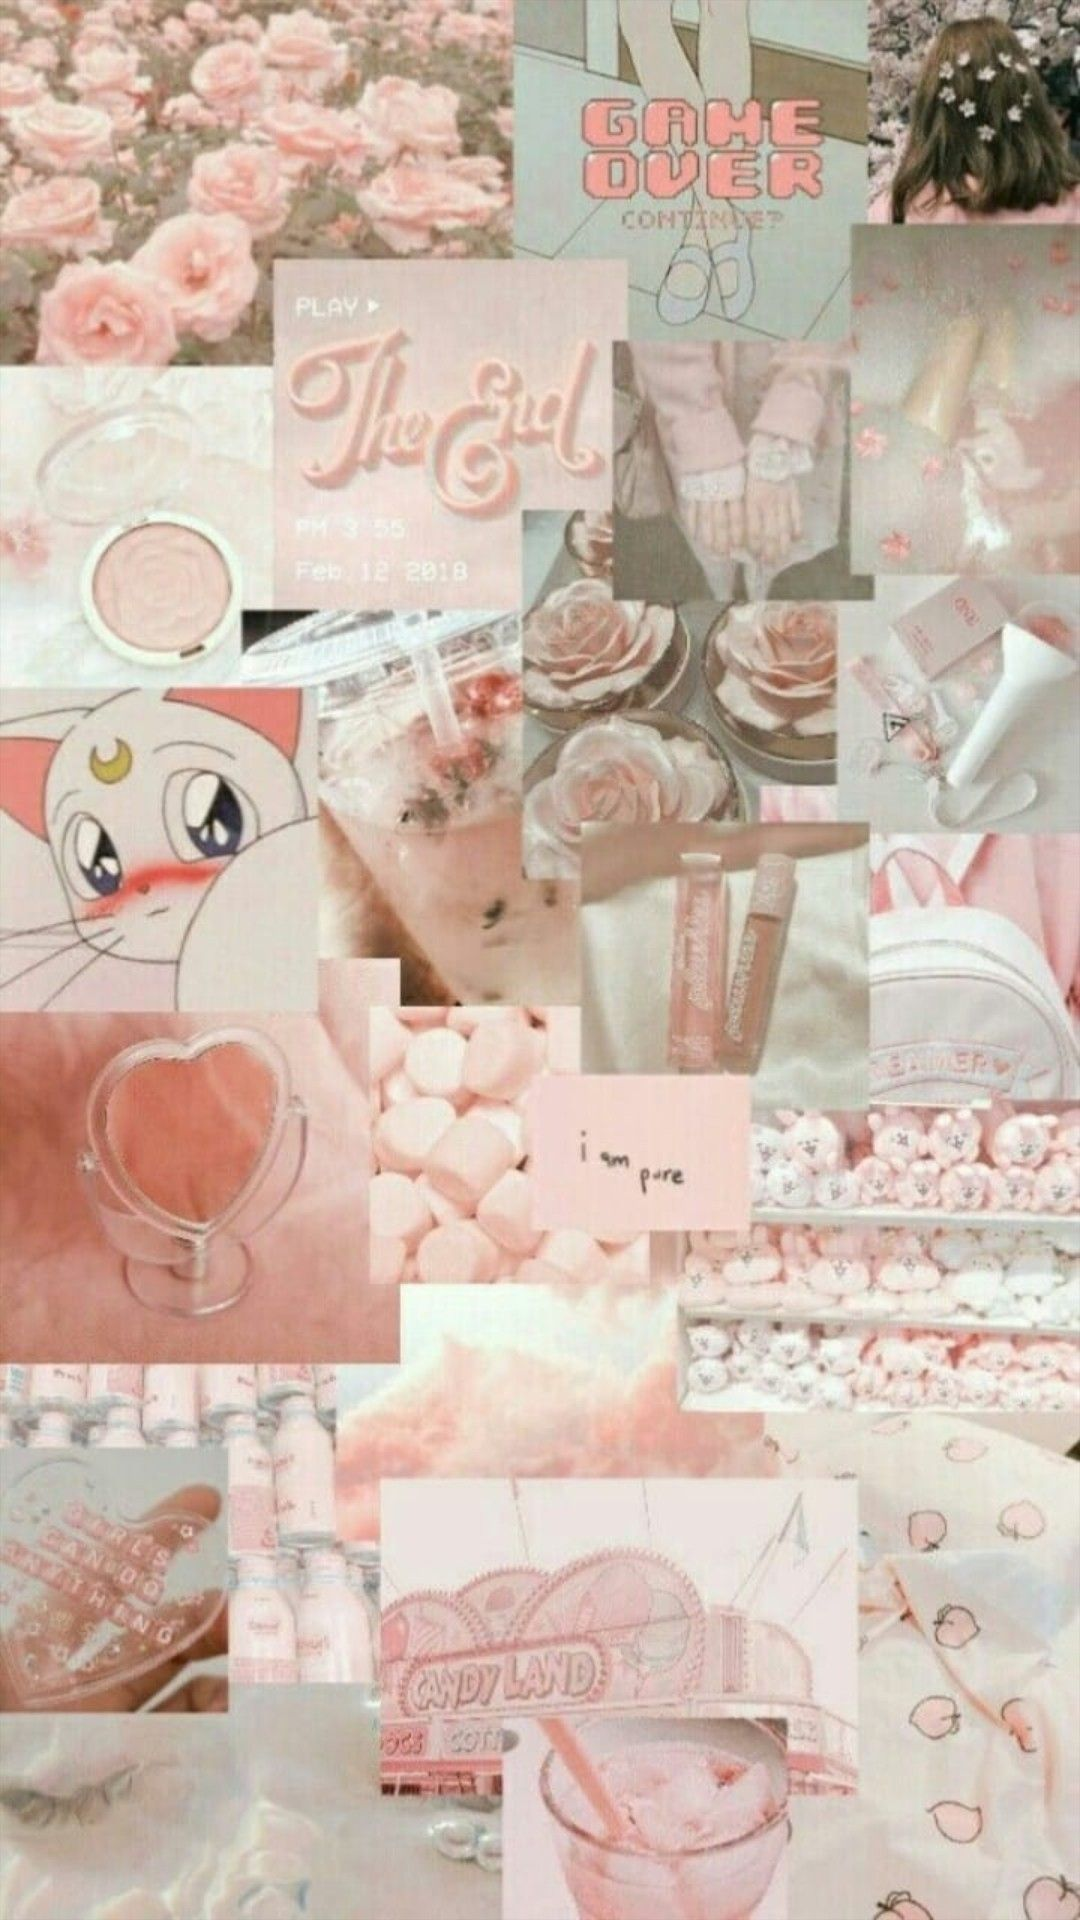 Aesthetic Peach Pink Wallpapers Top Free Aesthetic Peach Pink Backgrounds Wallpaperaccess Wallpaper pastel hippie wallpaper trippy wallpaper cute patterns wallpaper iphone background wallpaper retro wallpaper cartoon wallpaper smile wallpaper pretty wallpapers. aesthetic peach pink wallpapers top